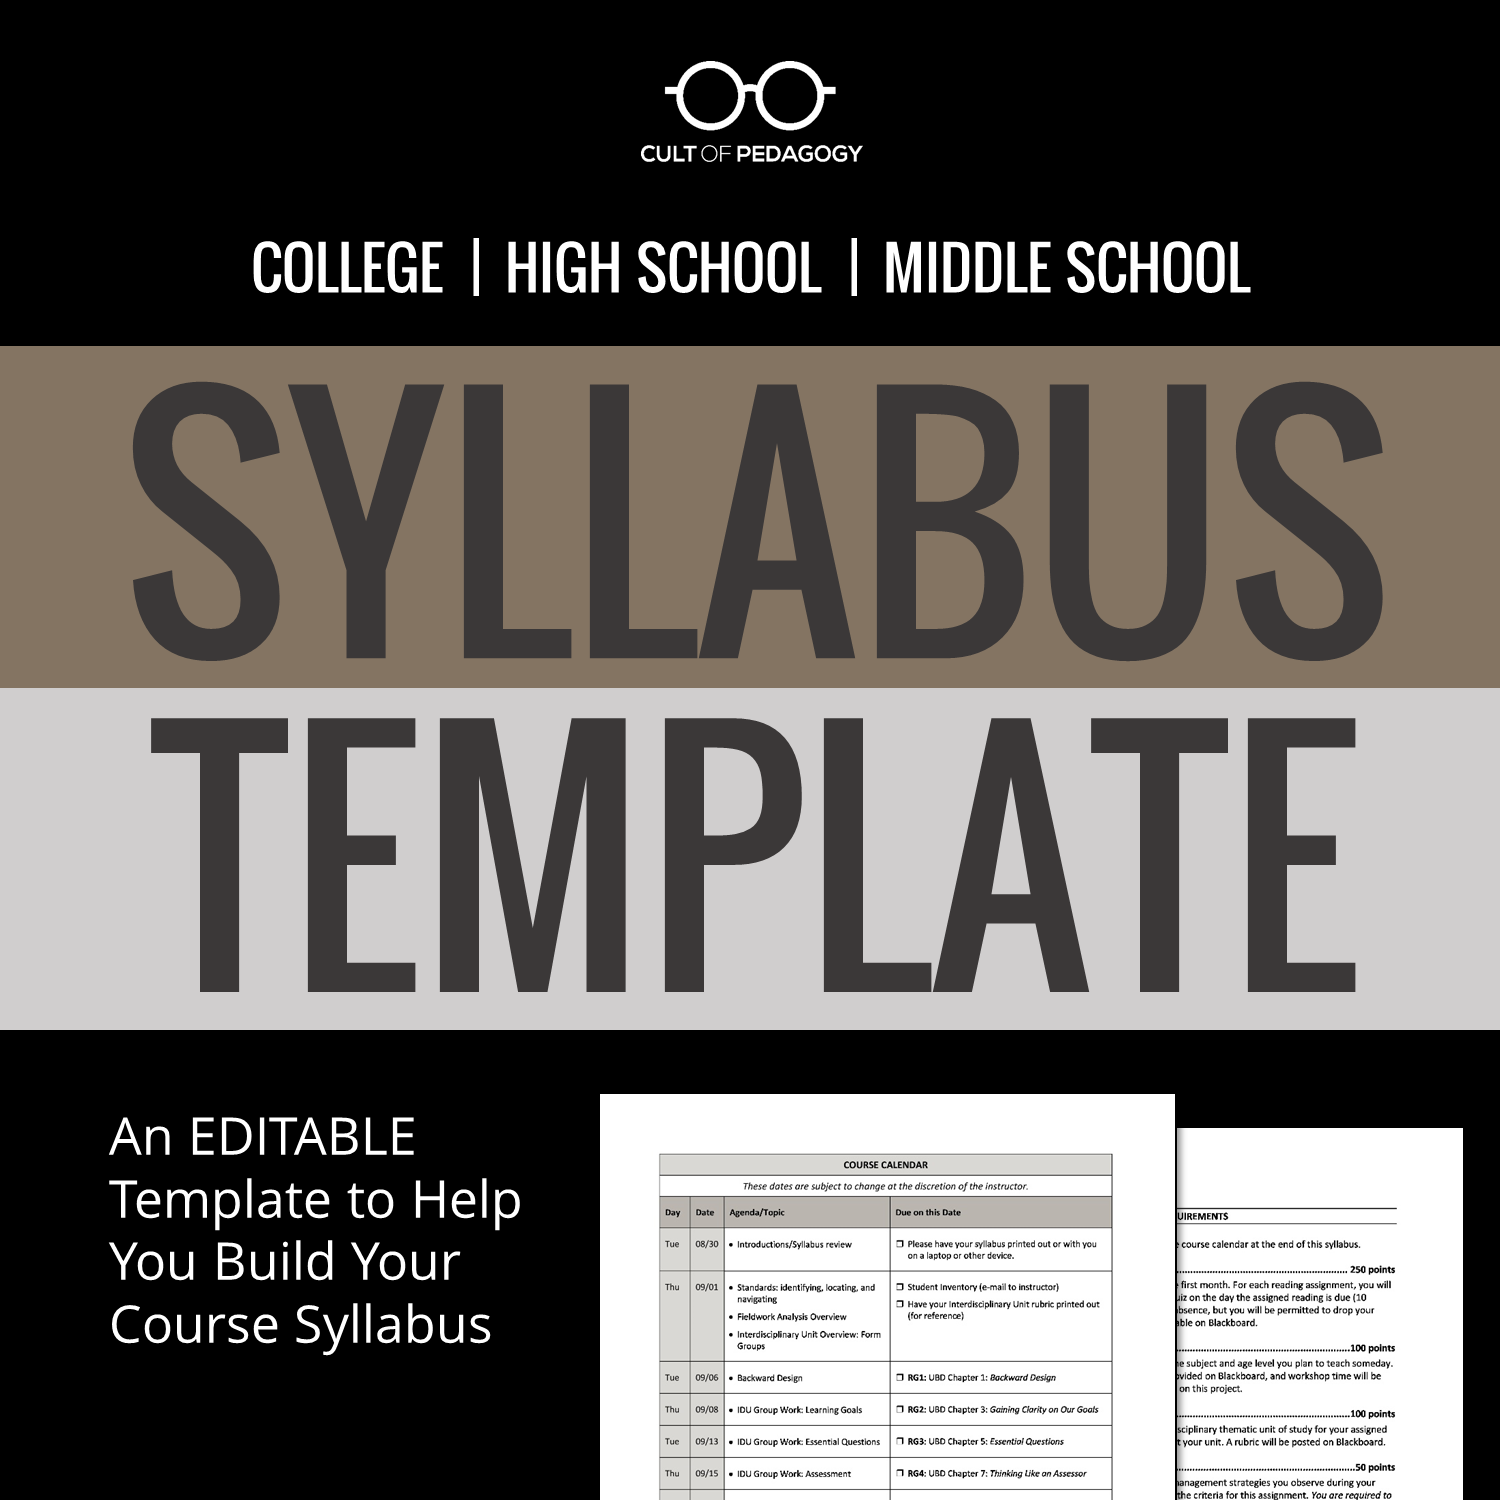 Syllabus Template Syllabus Template Syllabus Teaching College